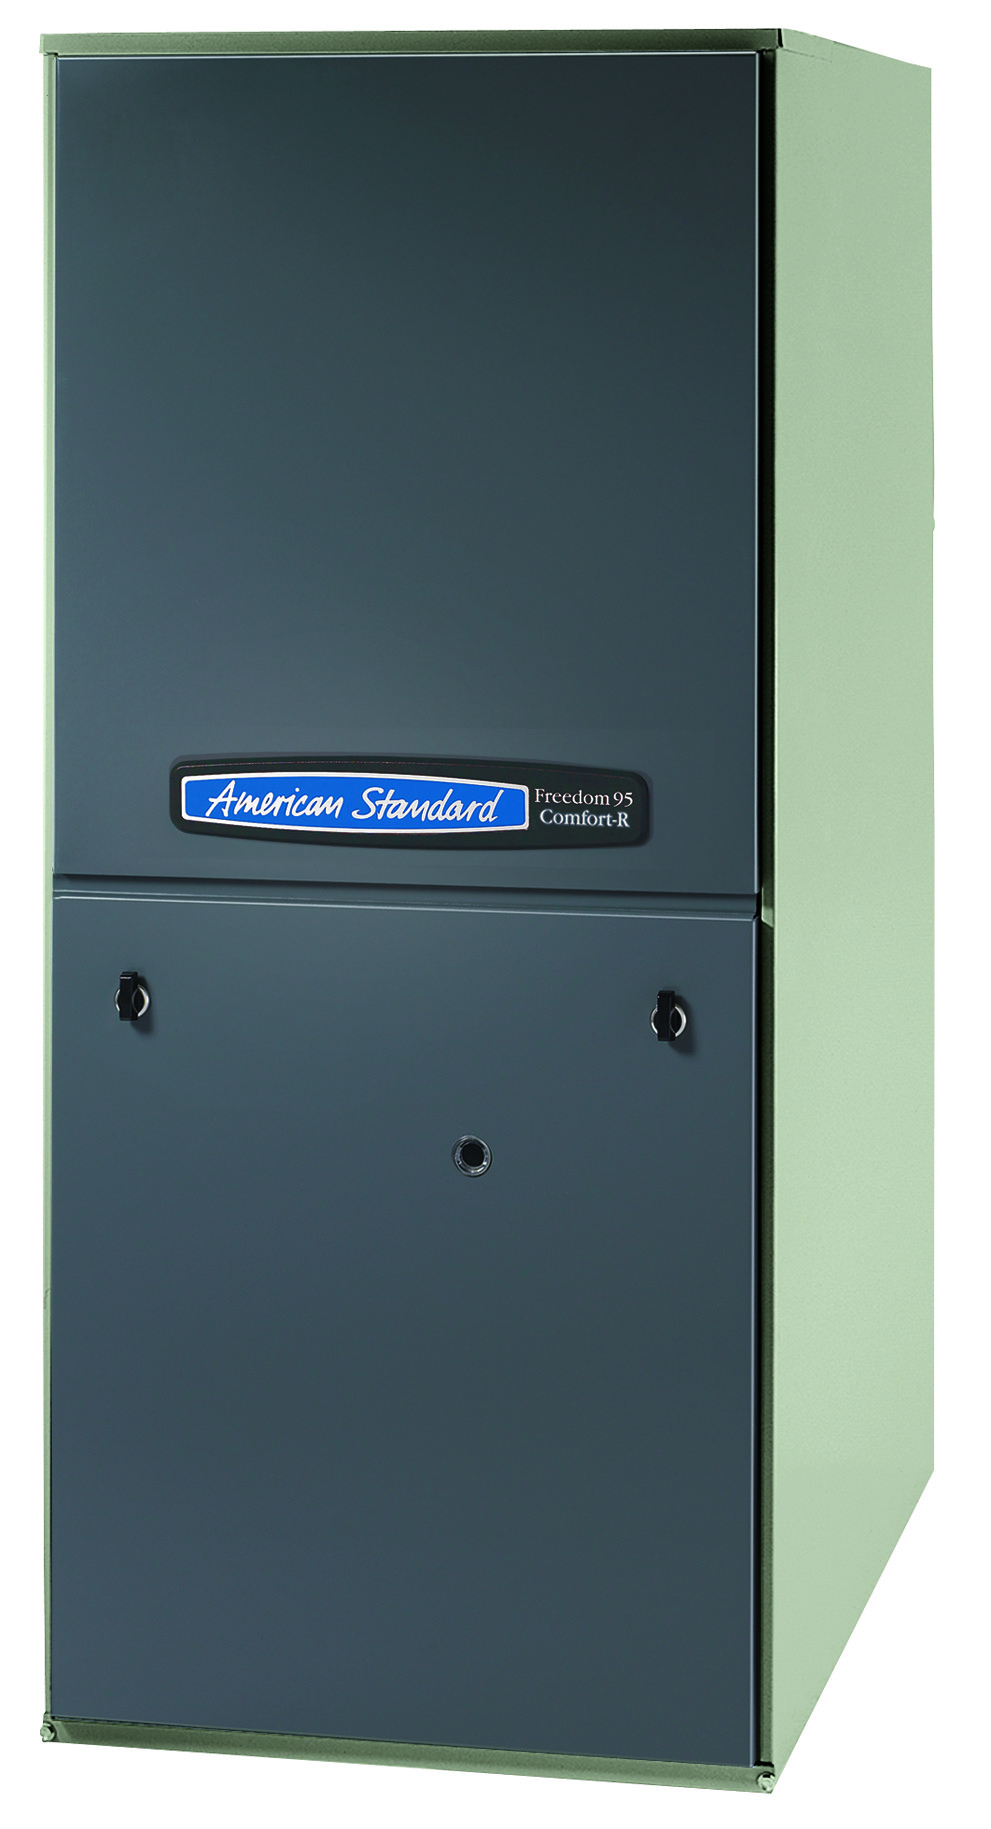 An American Standard high-efficiency furnace will save you money | The ...